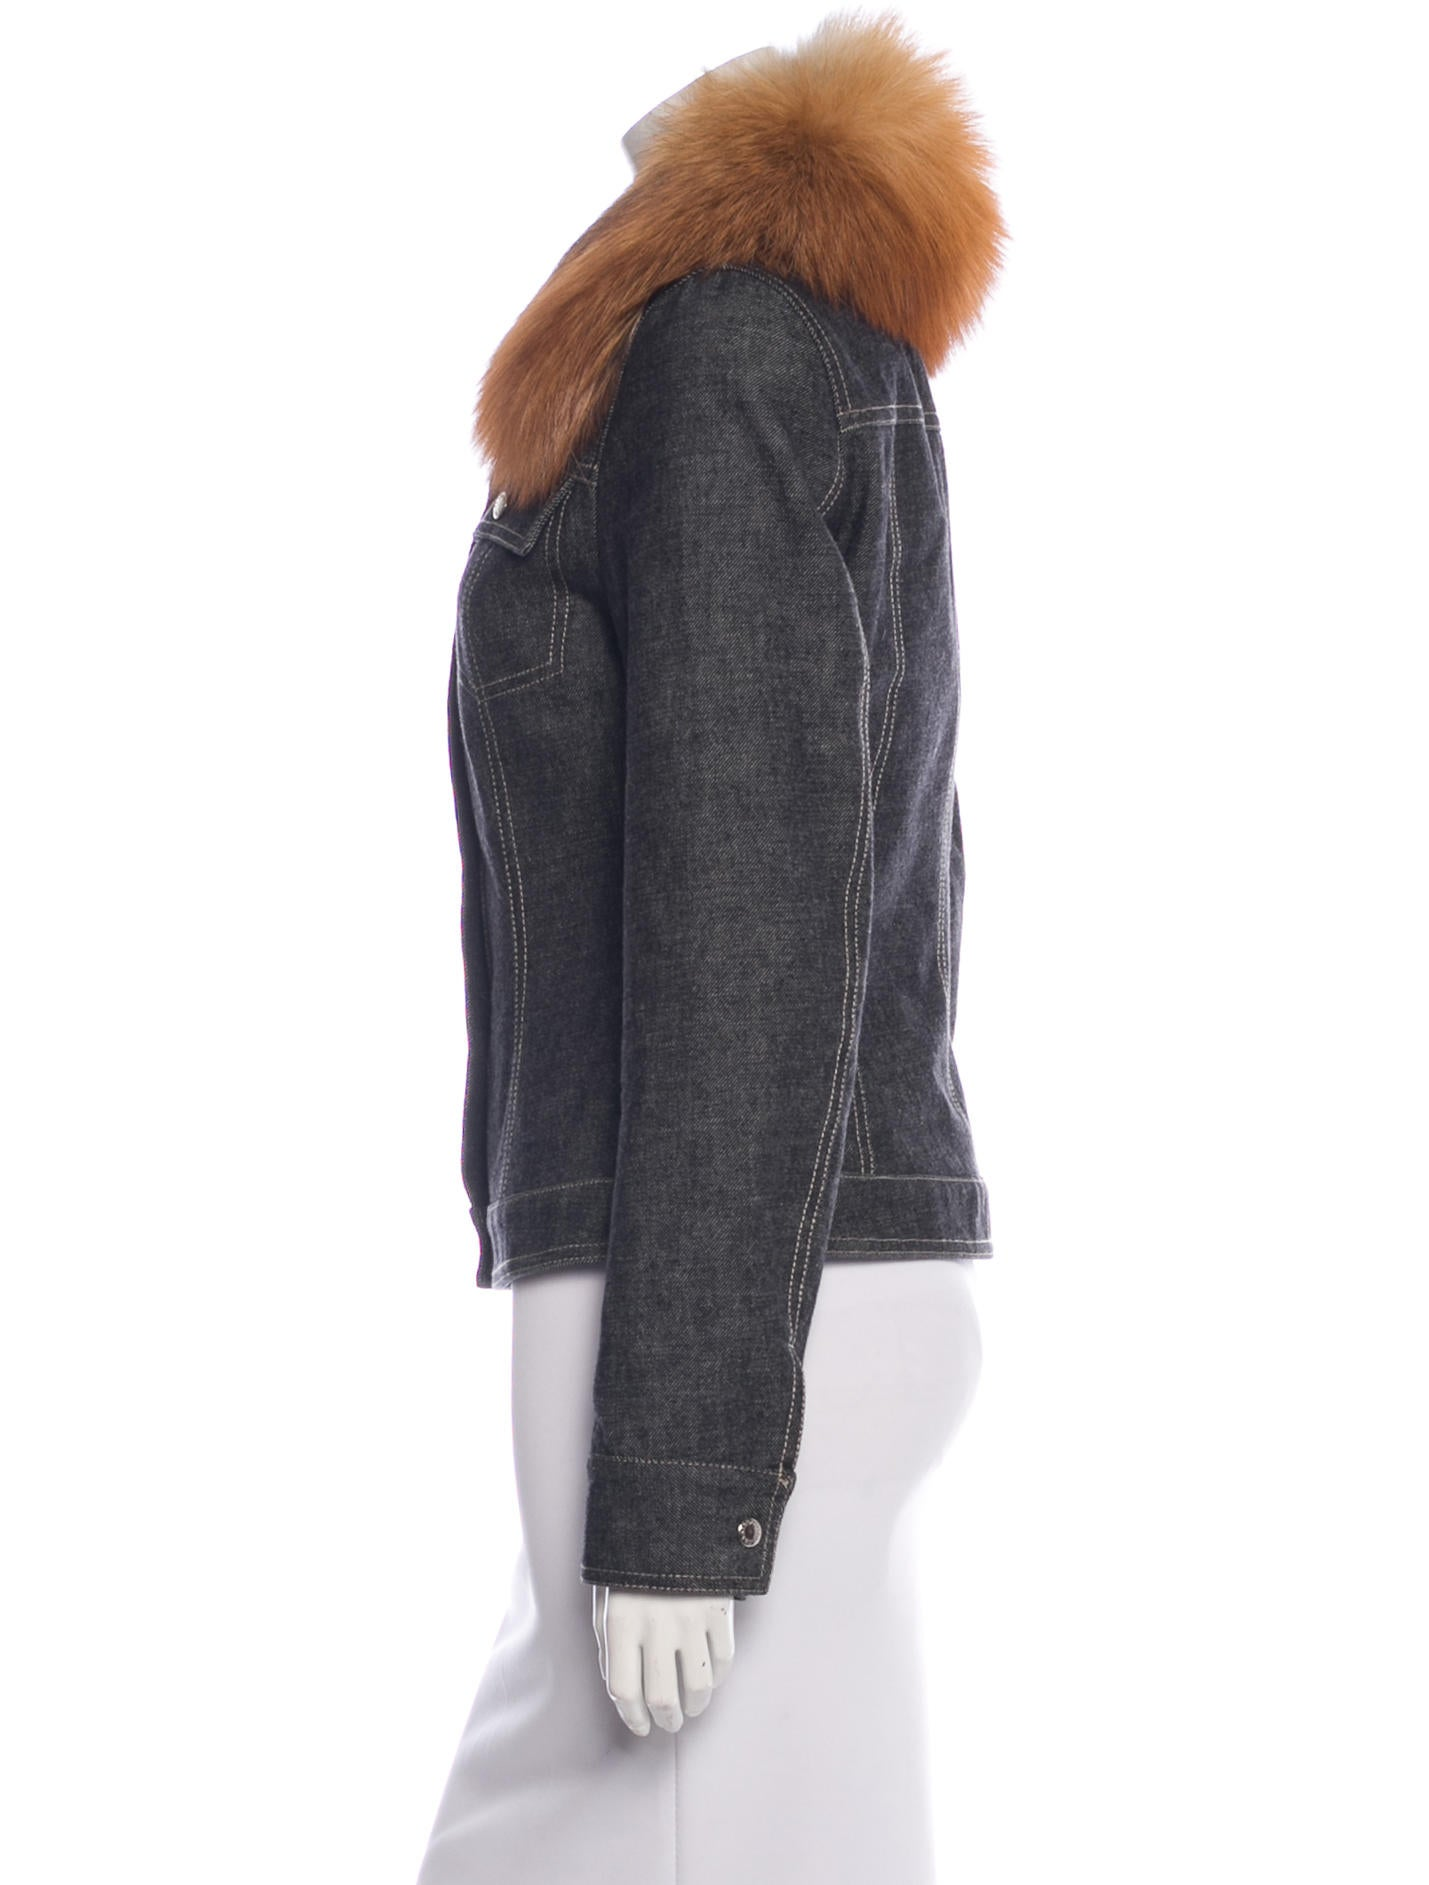 Fur Trimmed Jackets. Showing 48 of results that match your query. Search Product Result. Product - EC Womens QUILTED PUFFER COAT Detachable Fur Hood Lightweight Faux Fur Winter Jacket Belted 3ECA Product - Swiss Tech Women's Heavyweight Puffer Coat With Faux Fur Trim. Clearance. Product Image.